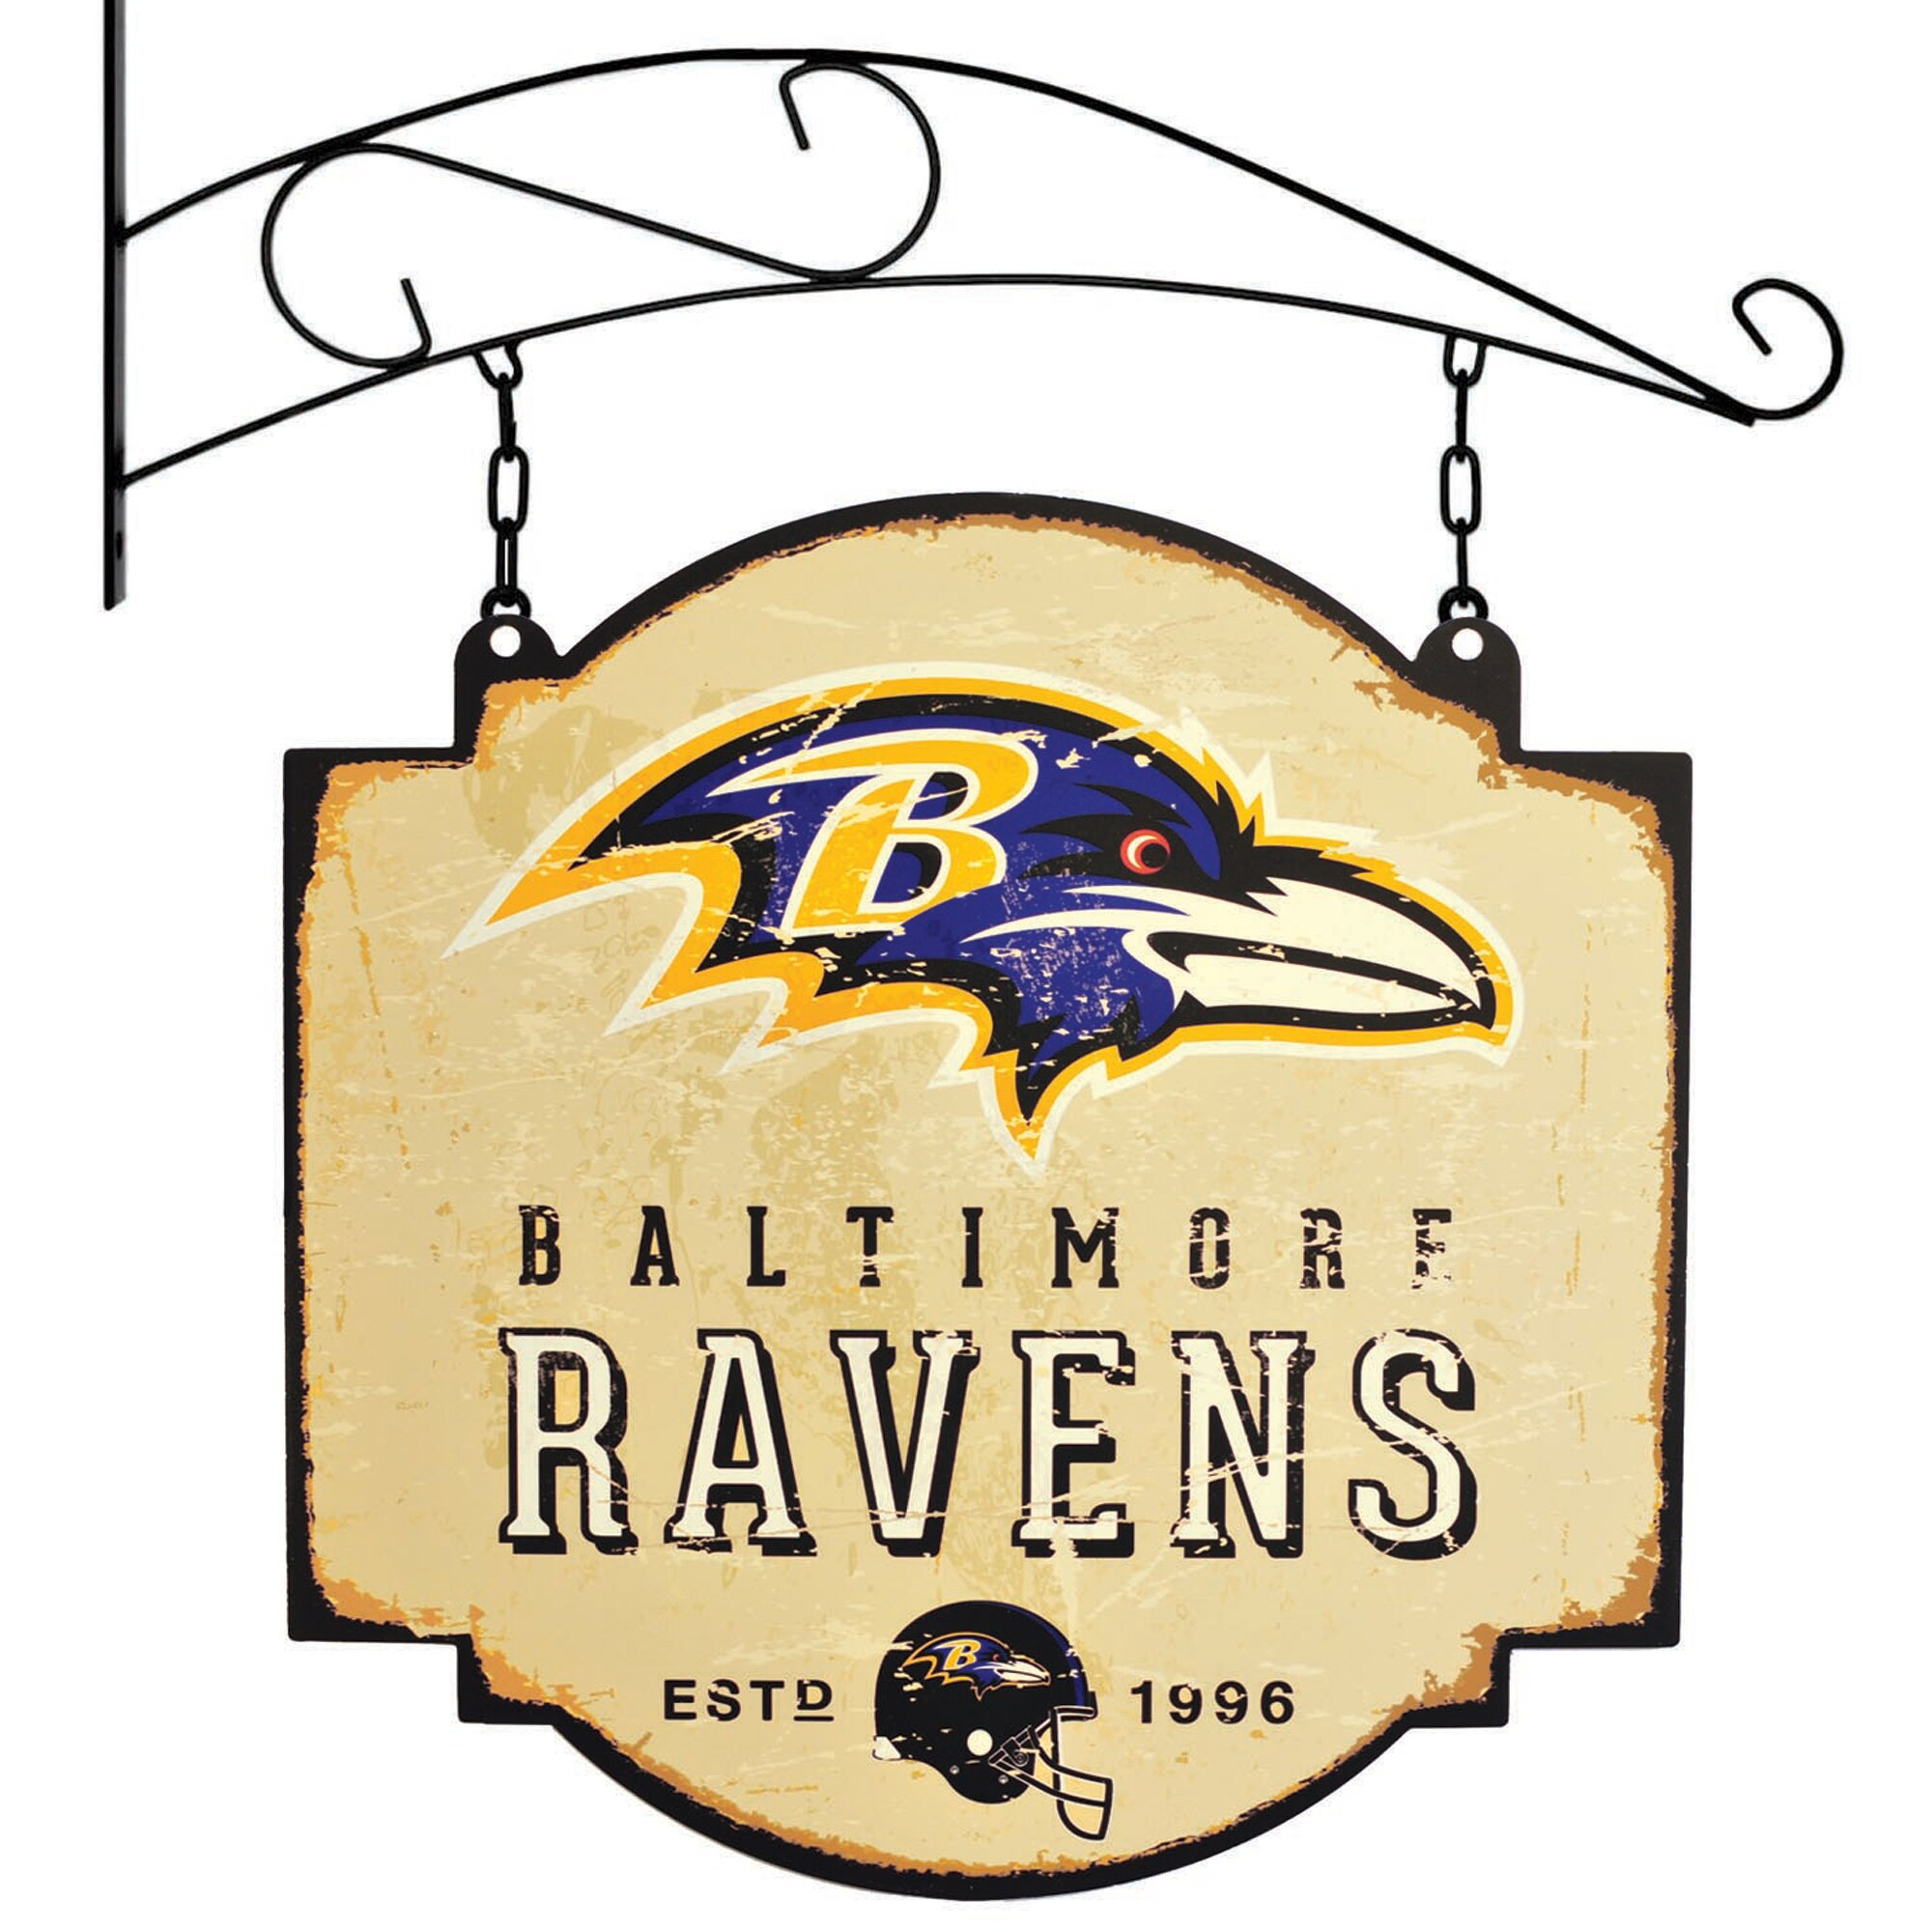 "Baltimore Ravens 16"" x 16"" Tavern Sign - Cream"